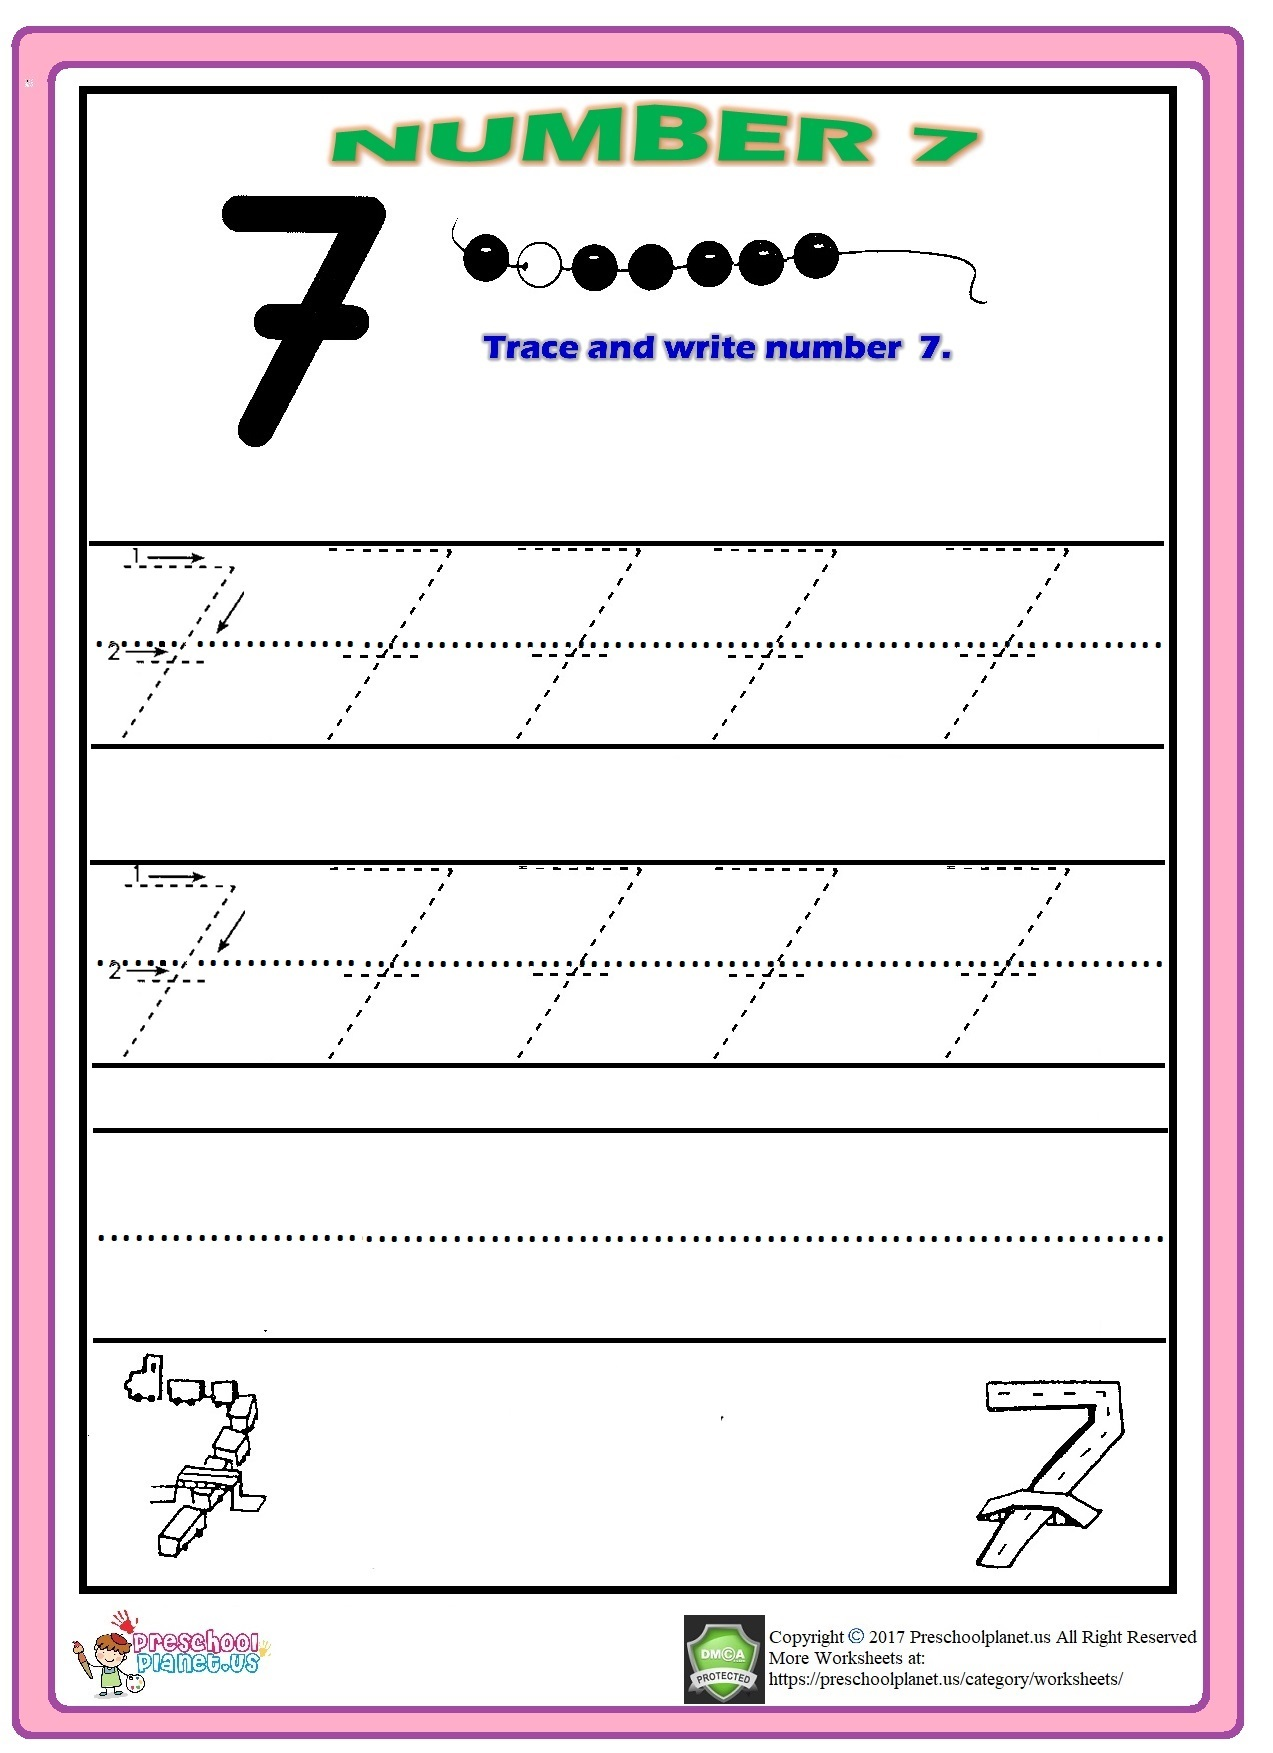 17 Number Butterfly Worksheet